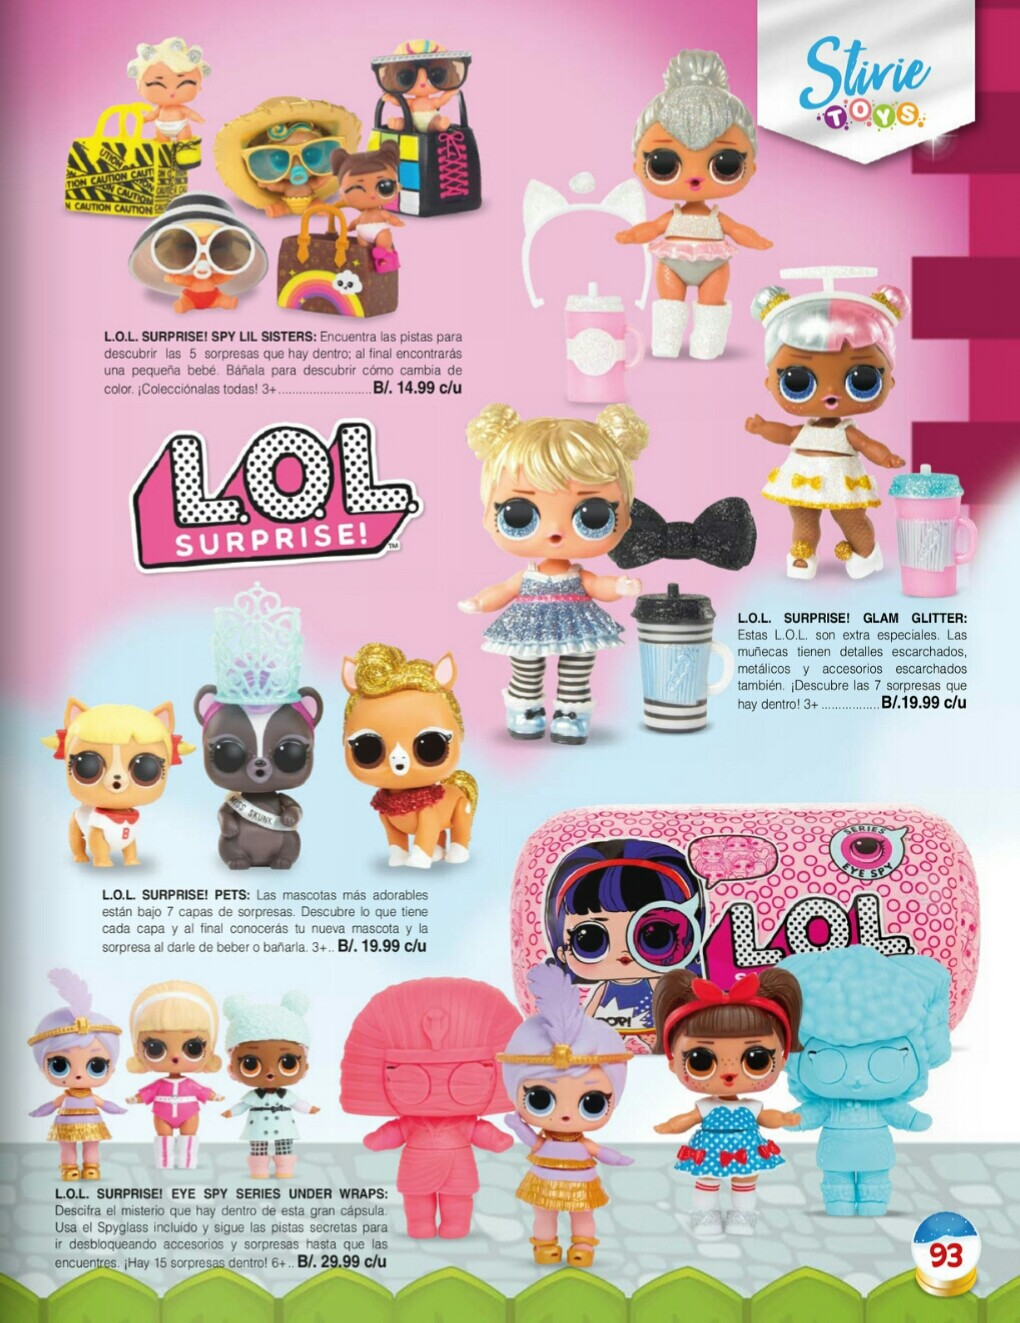 Catalogo juguetes Stivie toys 2018 p93